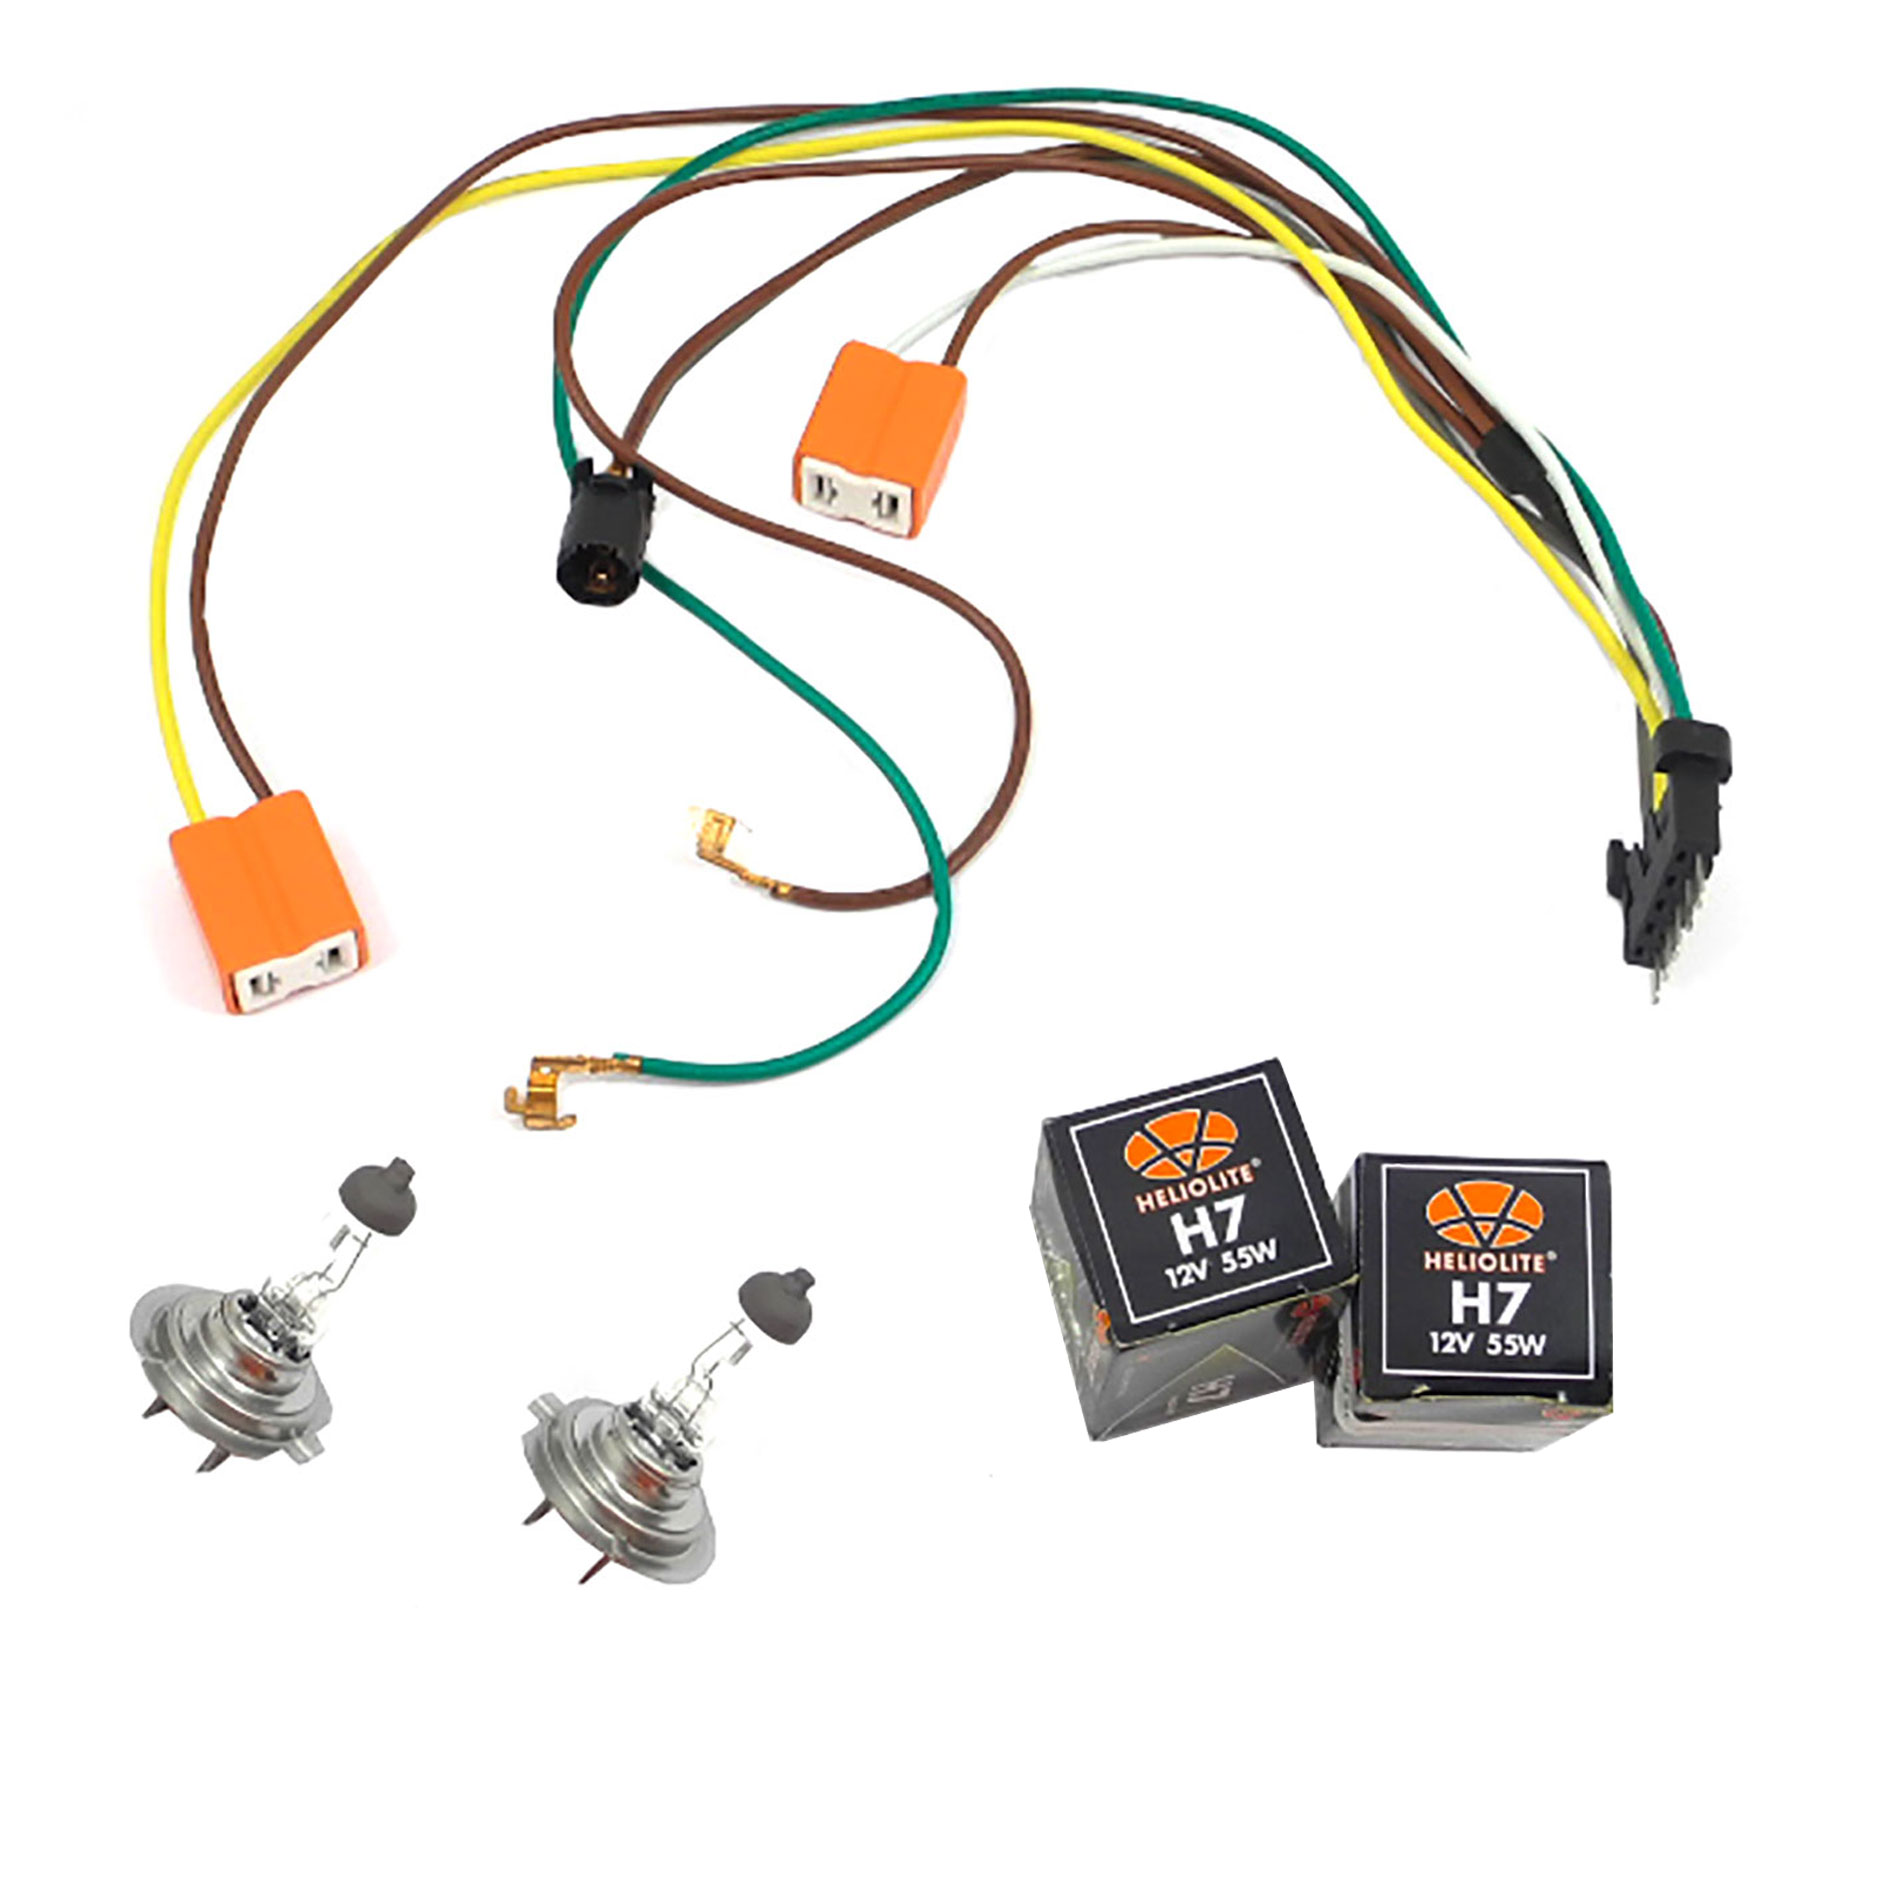 Details about L / R Headlight Wiring Harness & Headlight Bulb H7 55W on